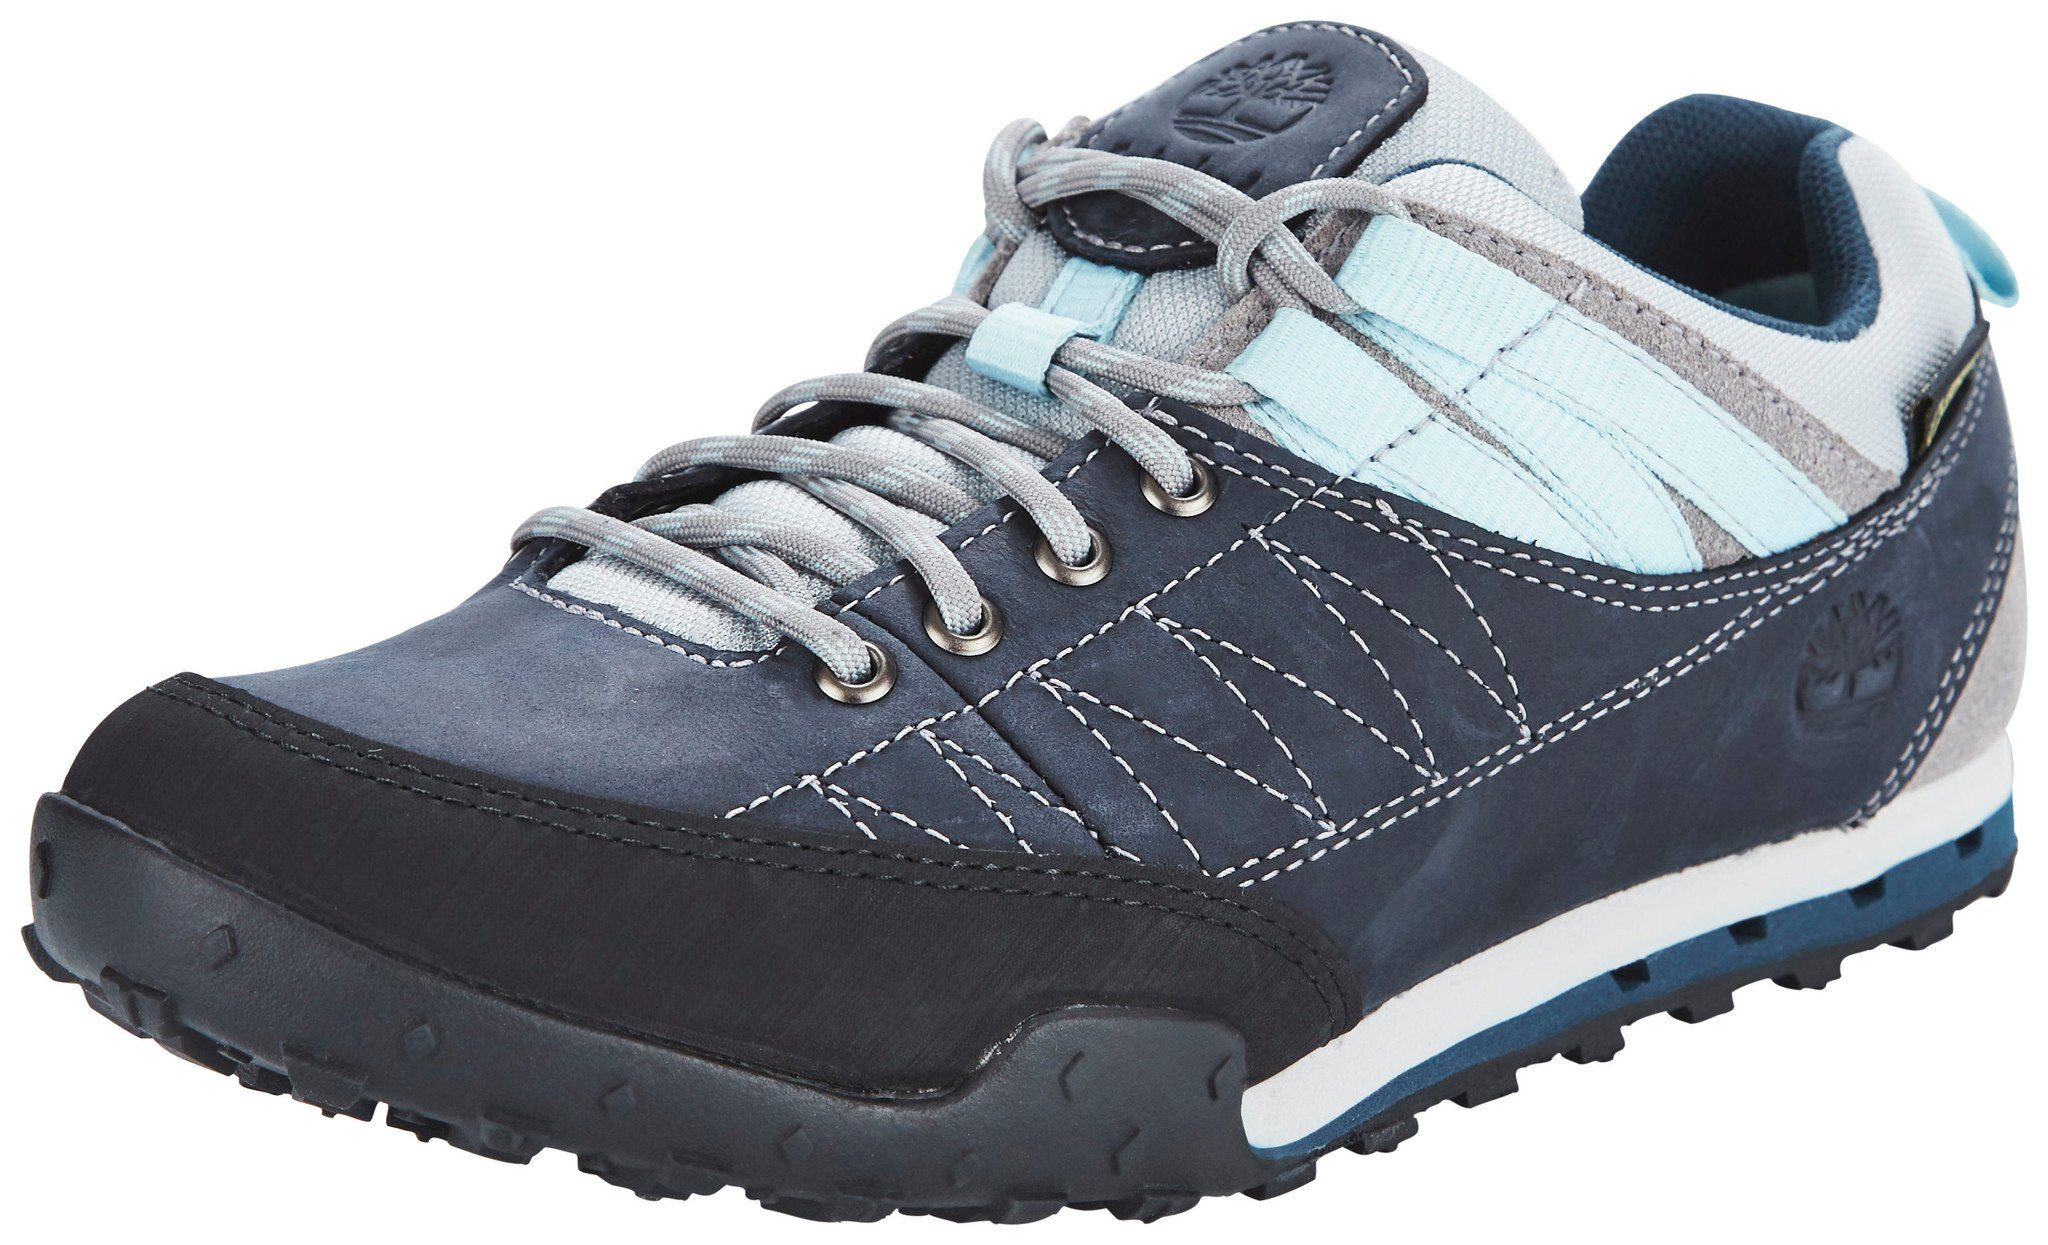 TIMBERLAND Kletterschuh »Greeley Approach Shoes Ladies Low«